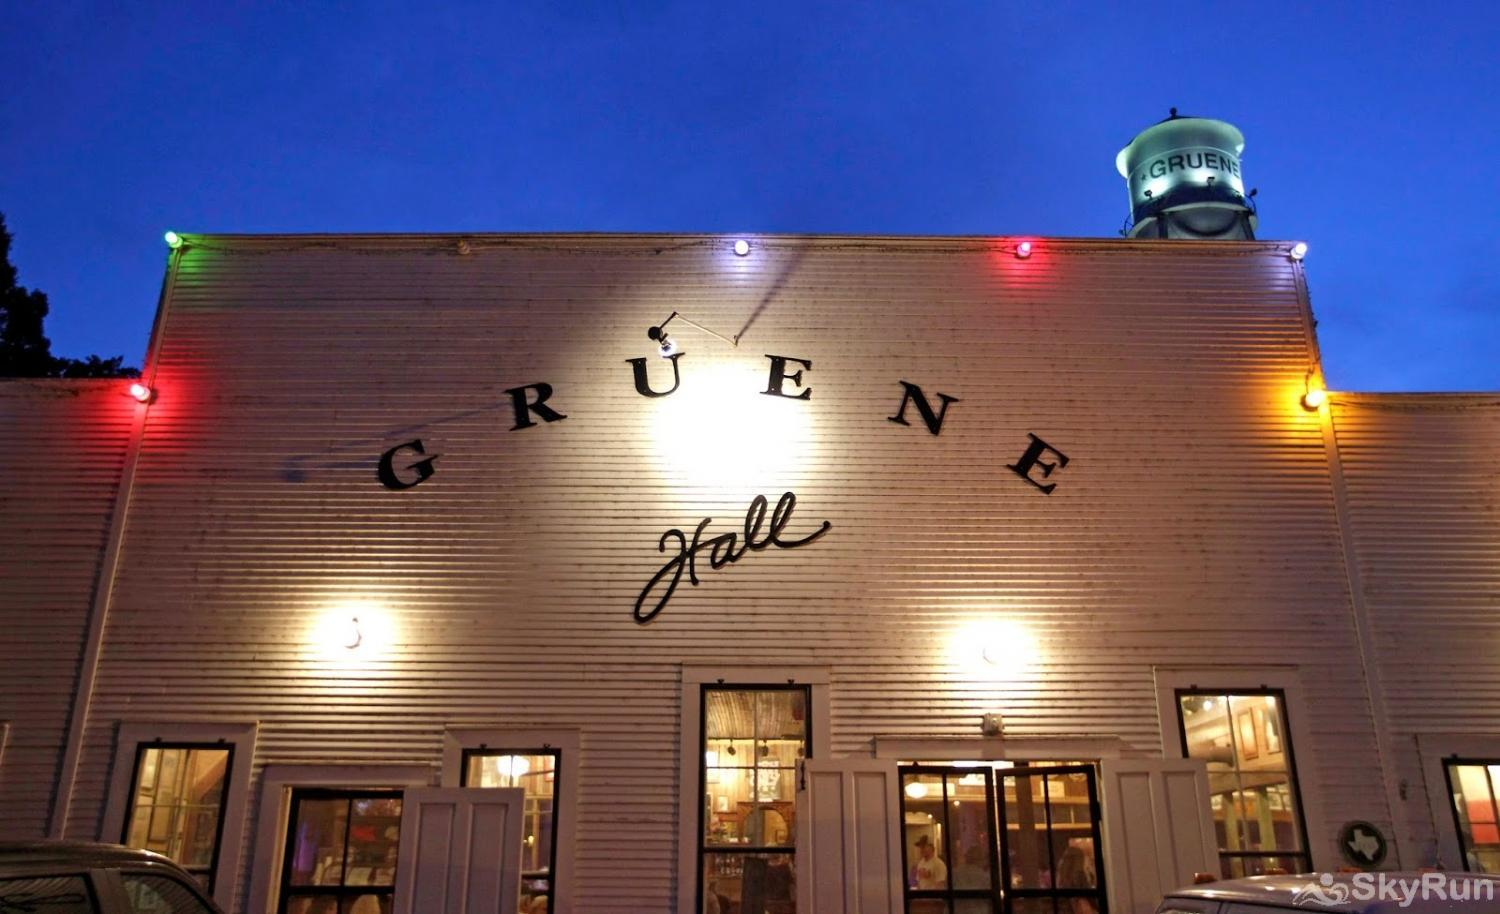 STAR OF TEXAS AND COTTAGE COMBO Gruene Hall, 12 miles away